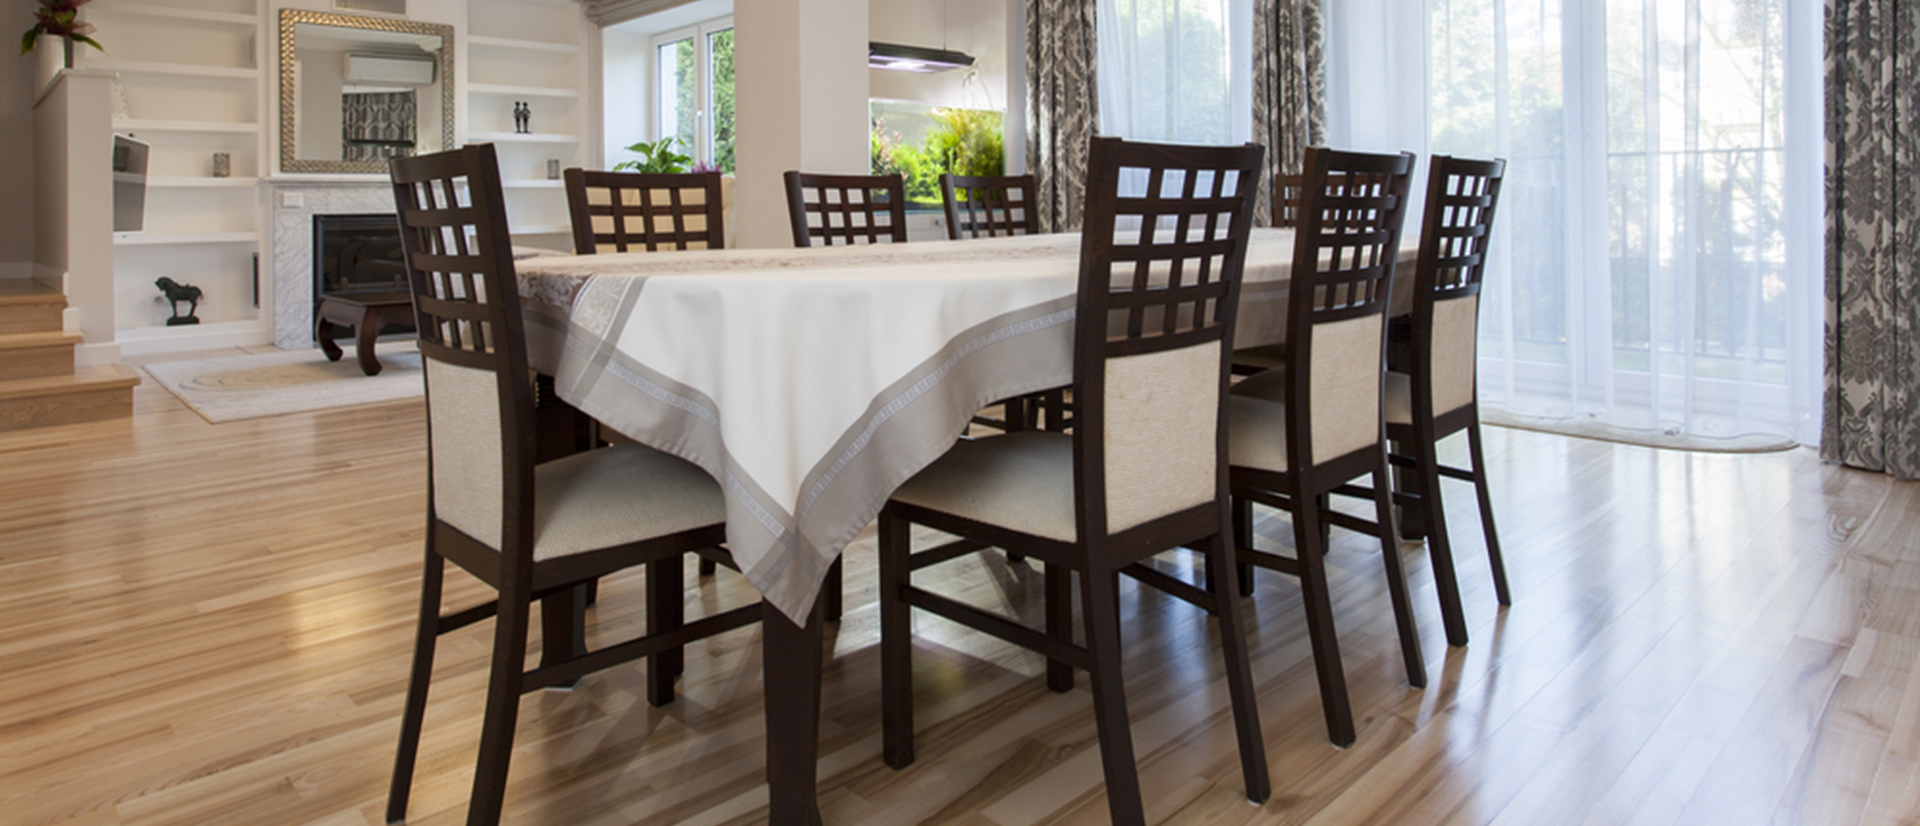 https://www.istockphoto.com/in/photo/modern-dining-room-beside-the-kitchen-ready-to-serve-gm623881670-109542787